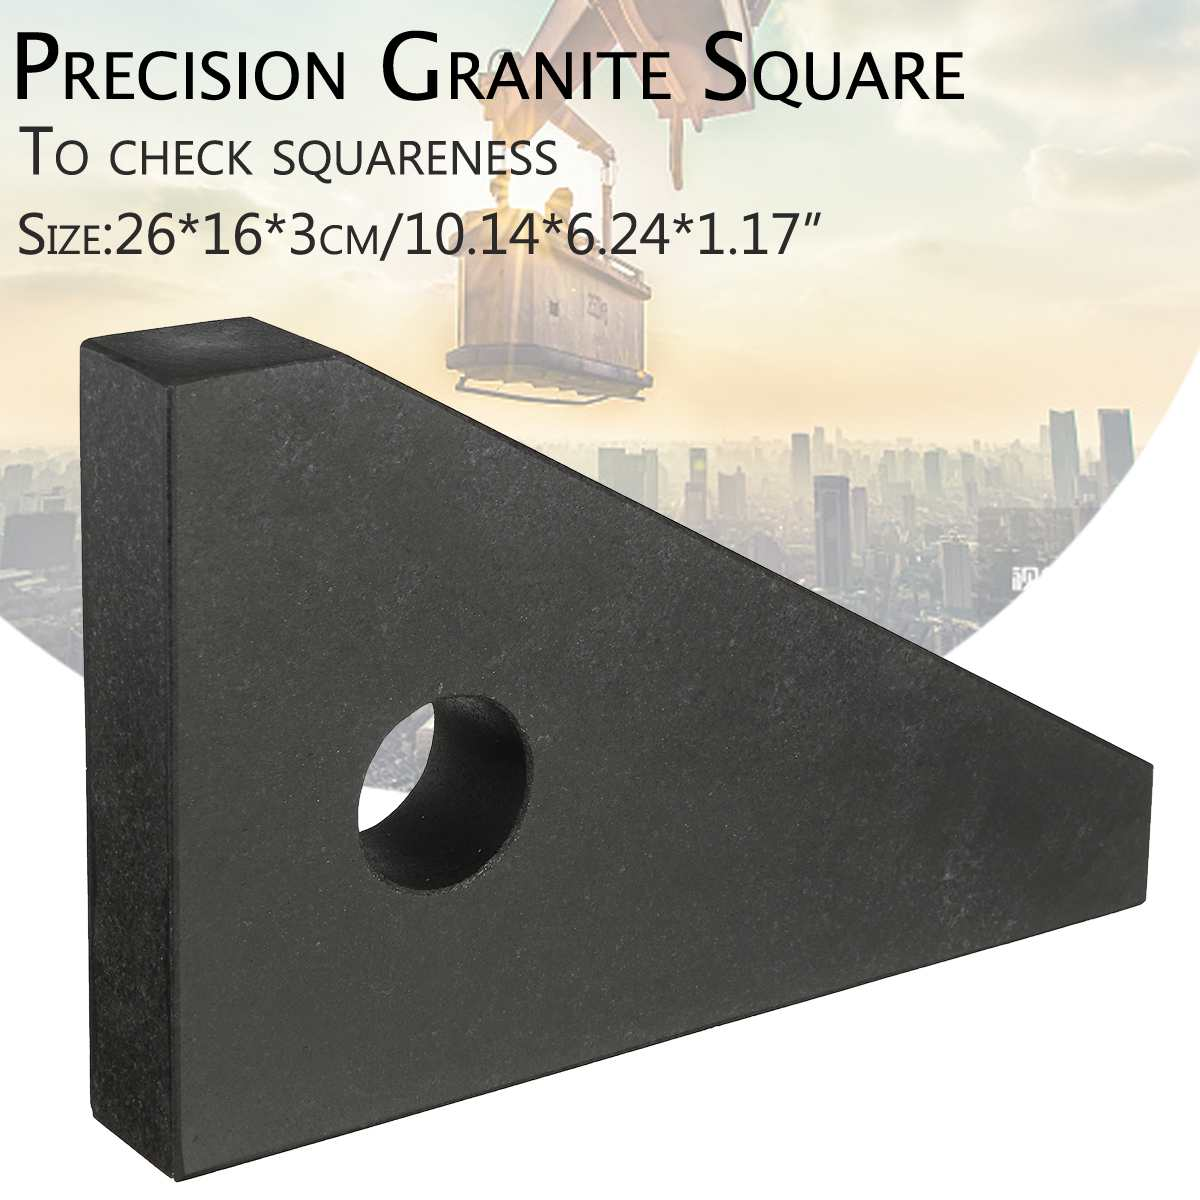 Angle Ruler Metric Triangular Measuring Ruler marble Square ruler Woodwork Speed Square Triangle Angle Precision Granite